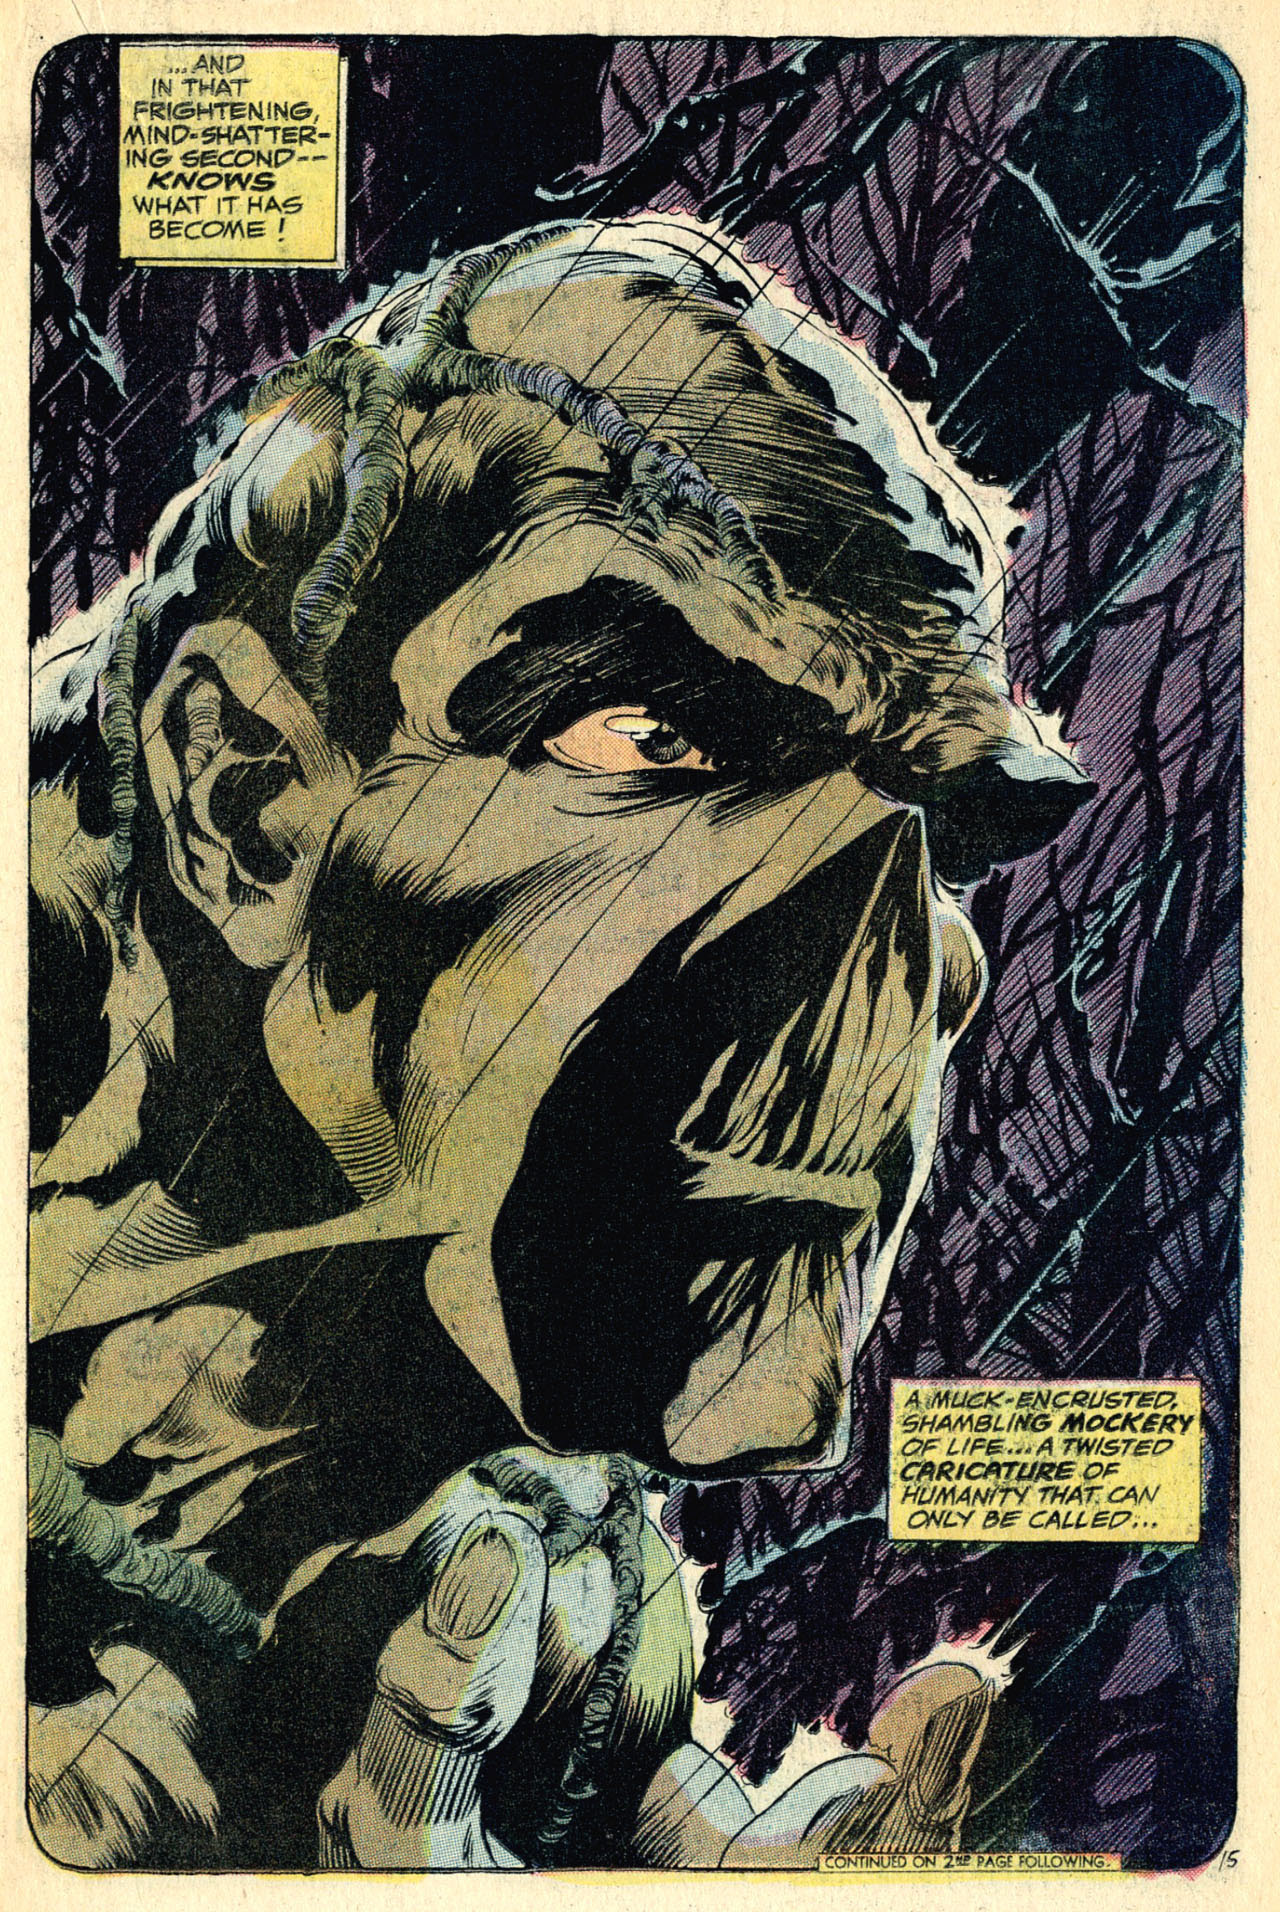 The Swamp Thing, by Len Wein and Bernie Wrightson